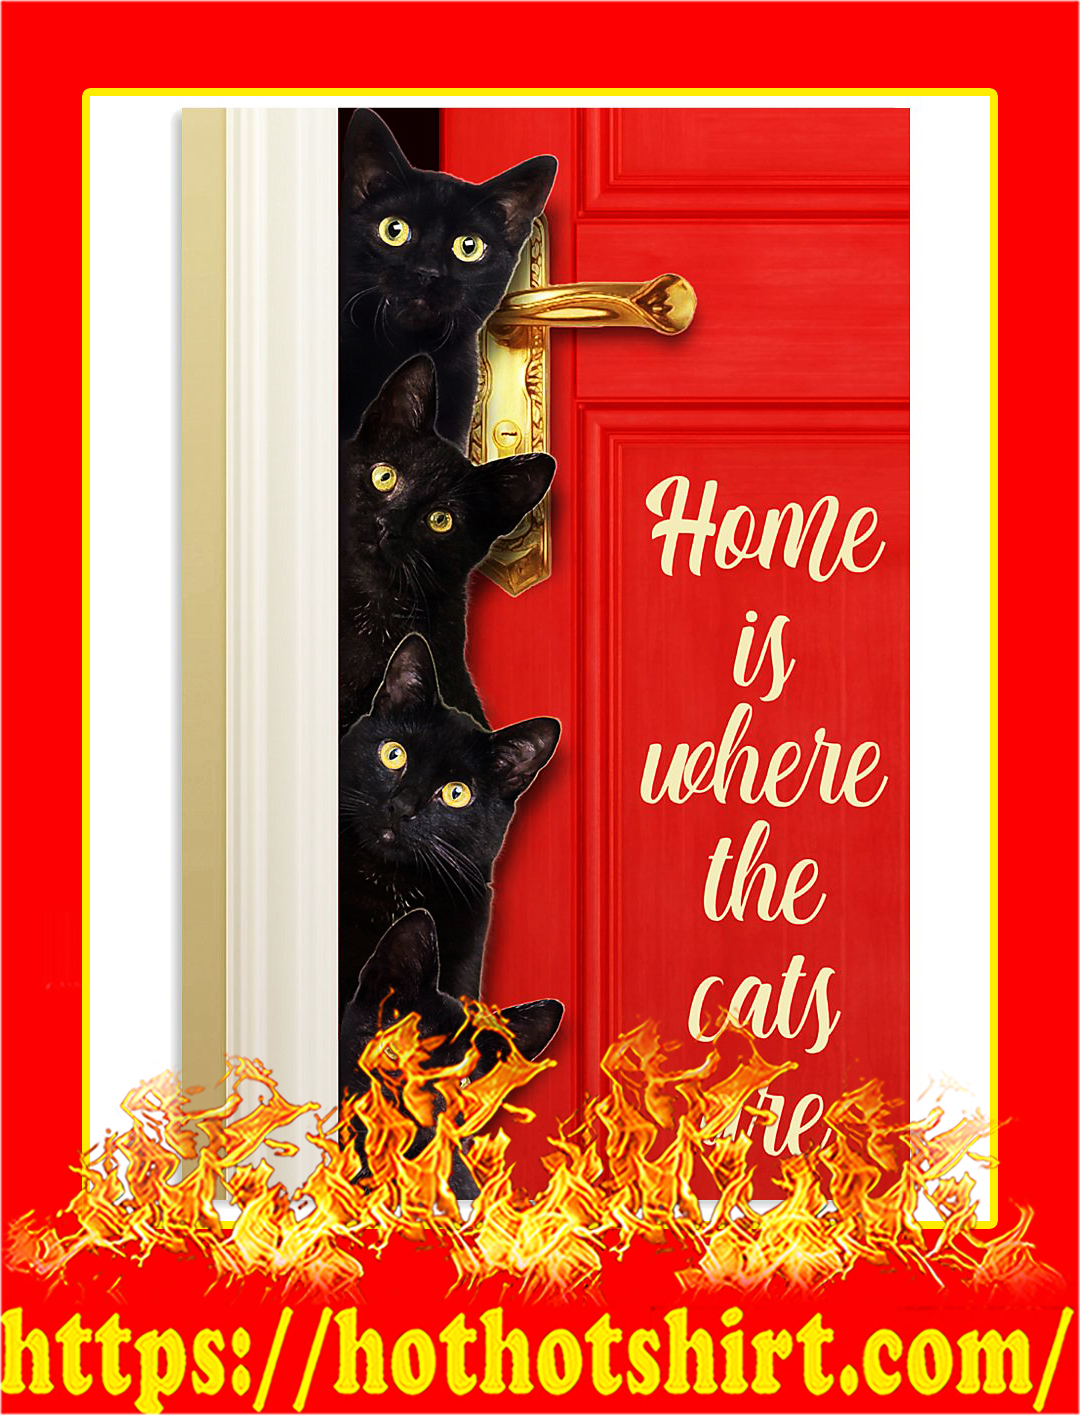 Home is where the cats are poster